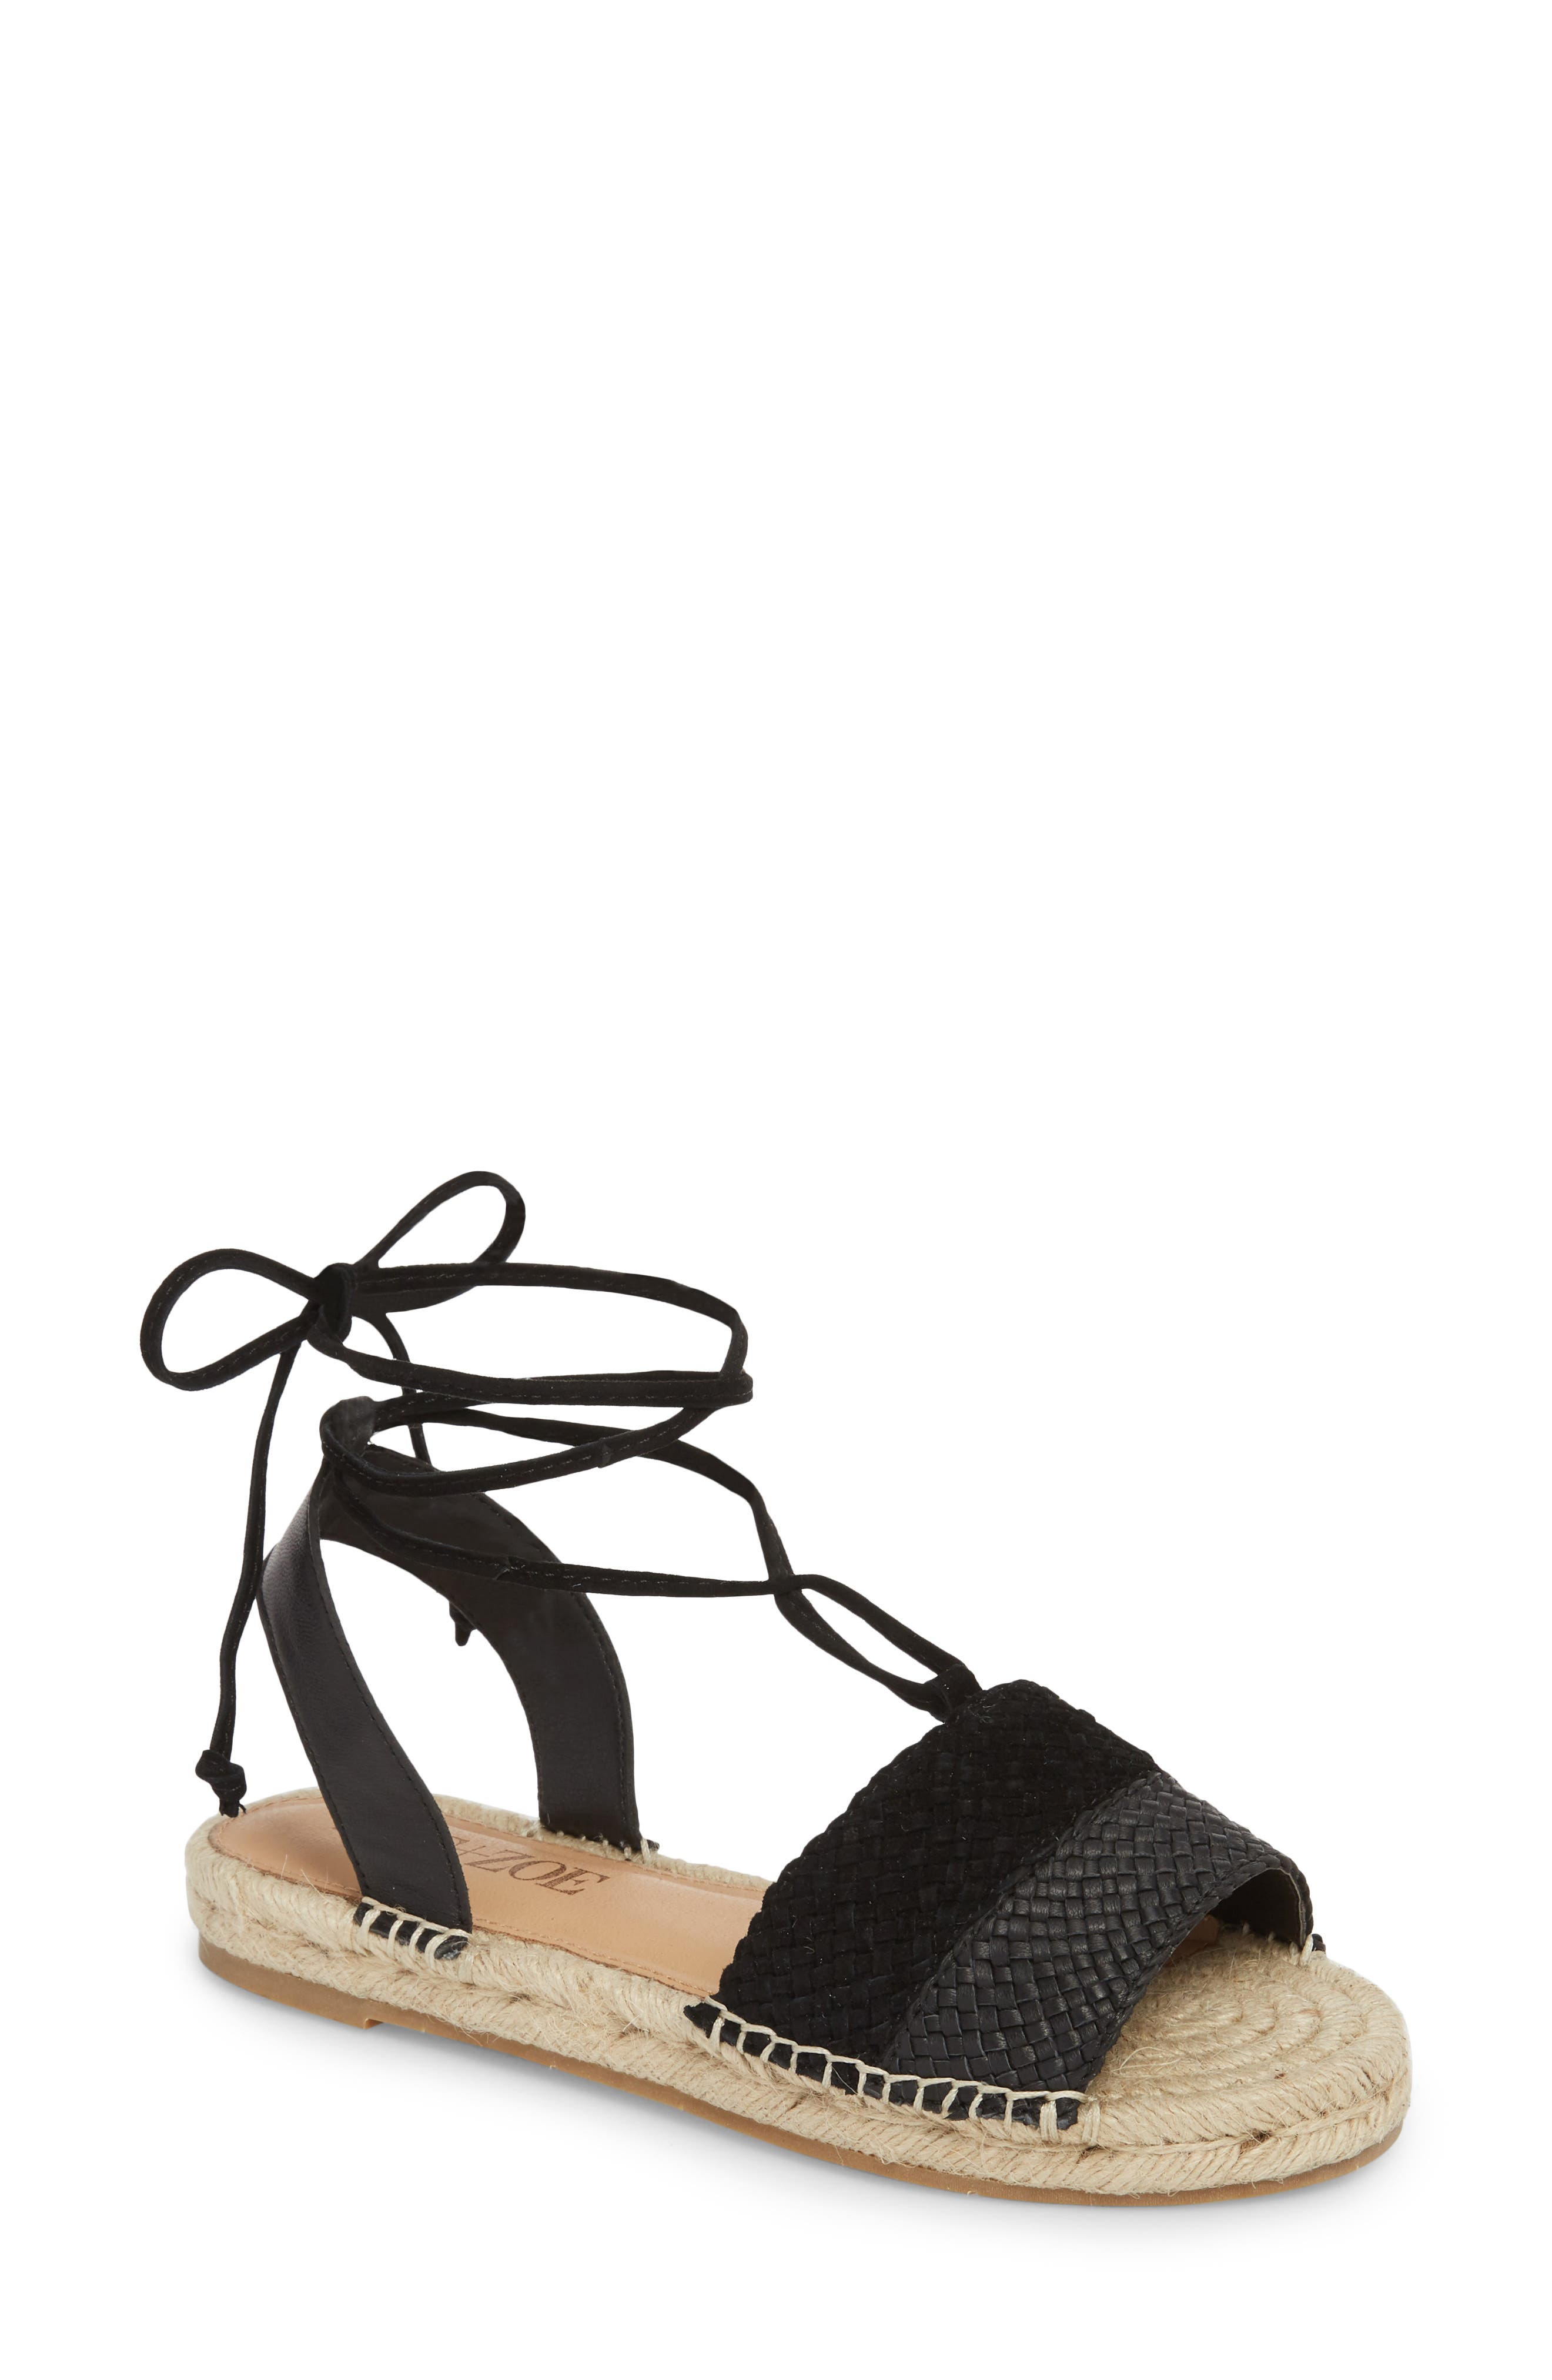 NIC+ZOE Eliza Ankle Wrap Espadrille Sandal, Main, color, BLACK FABRIC